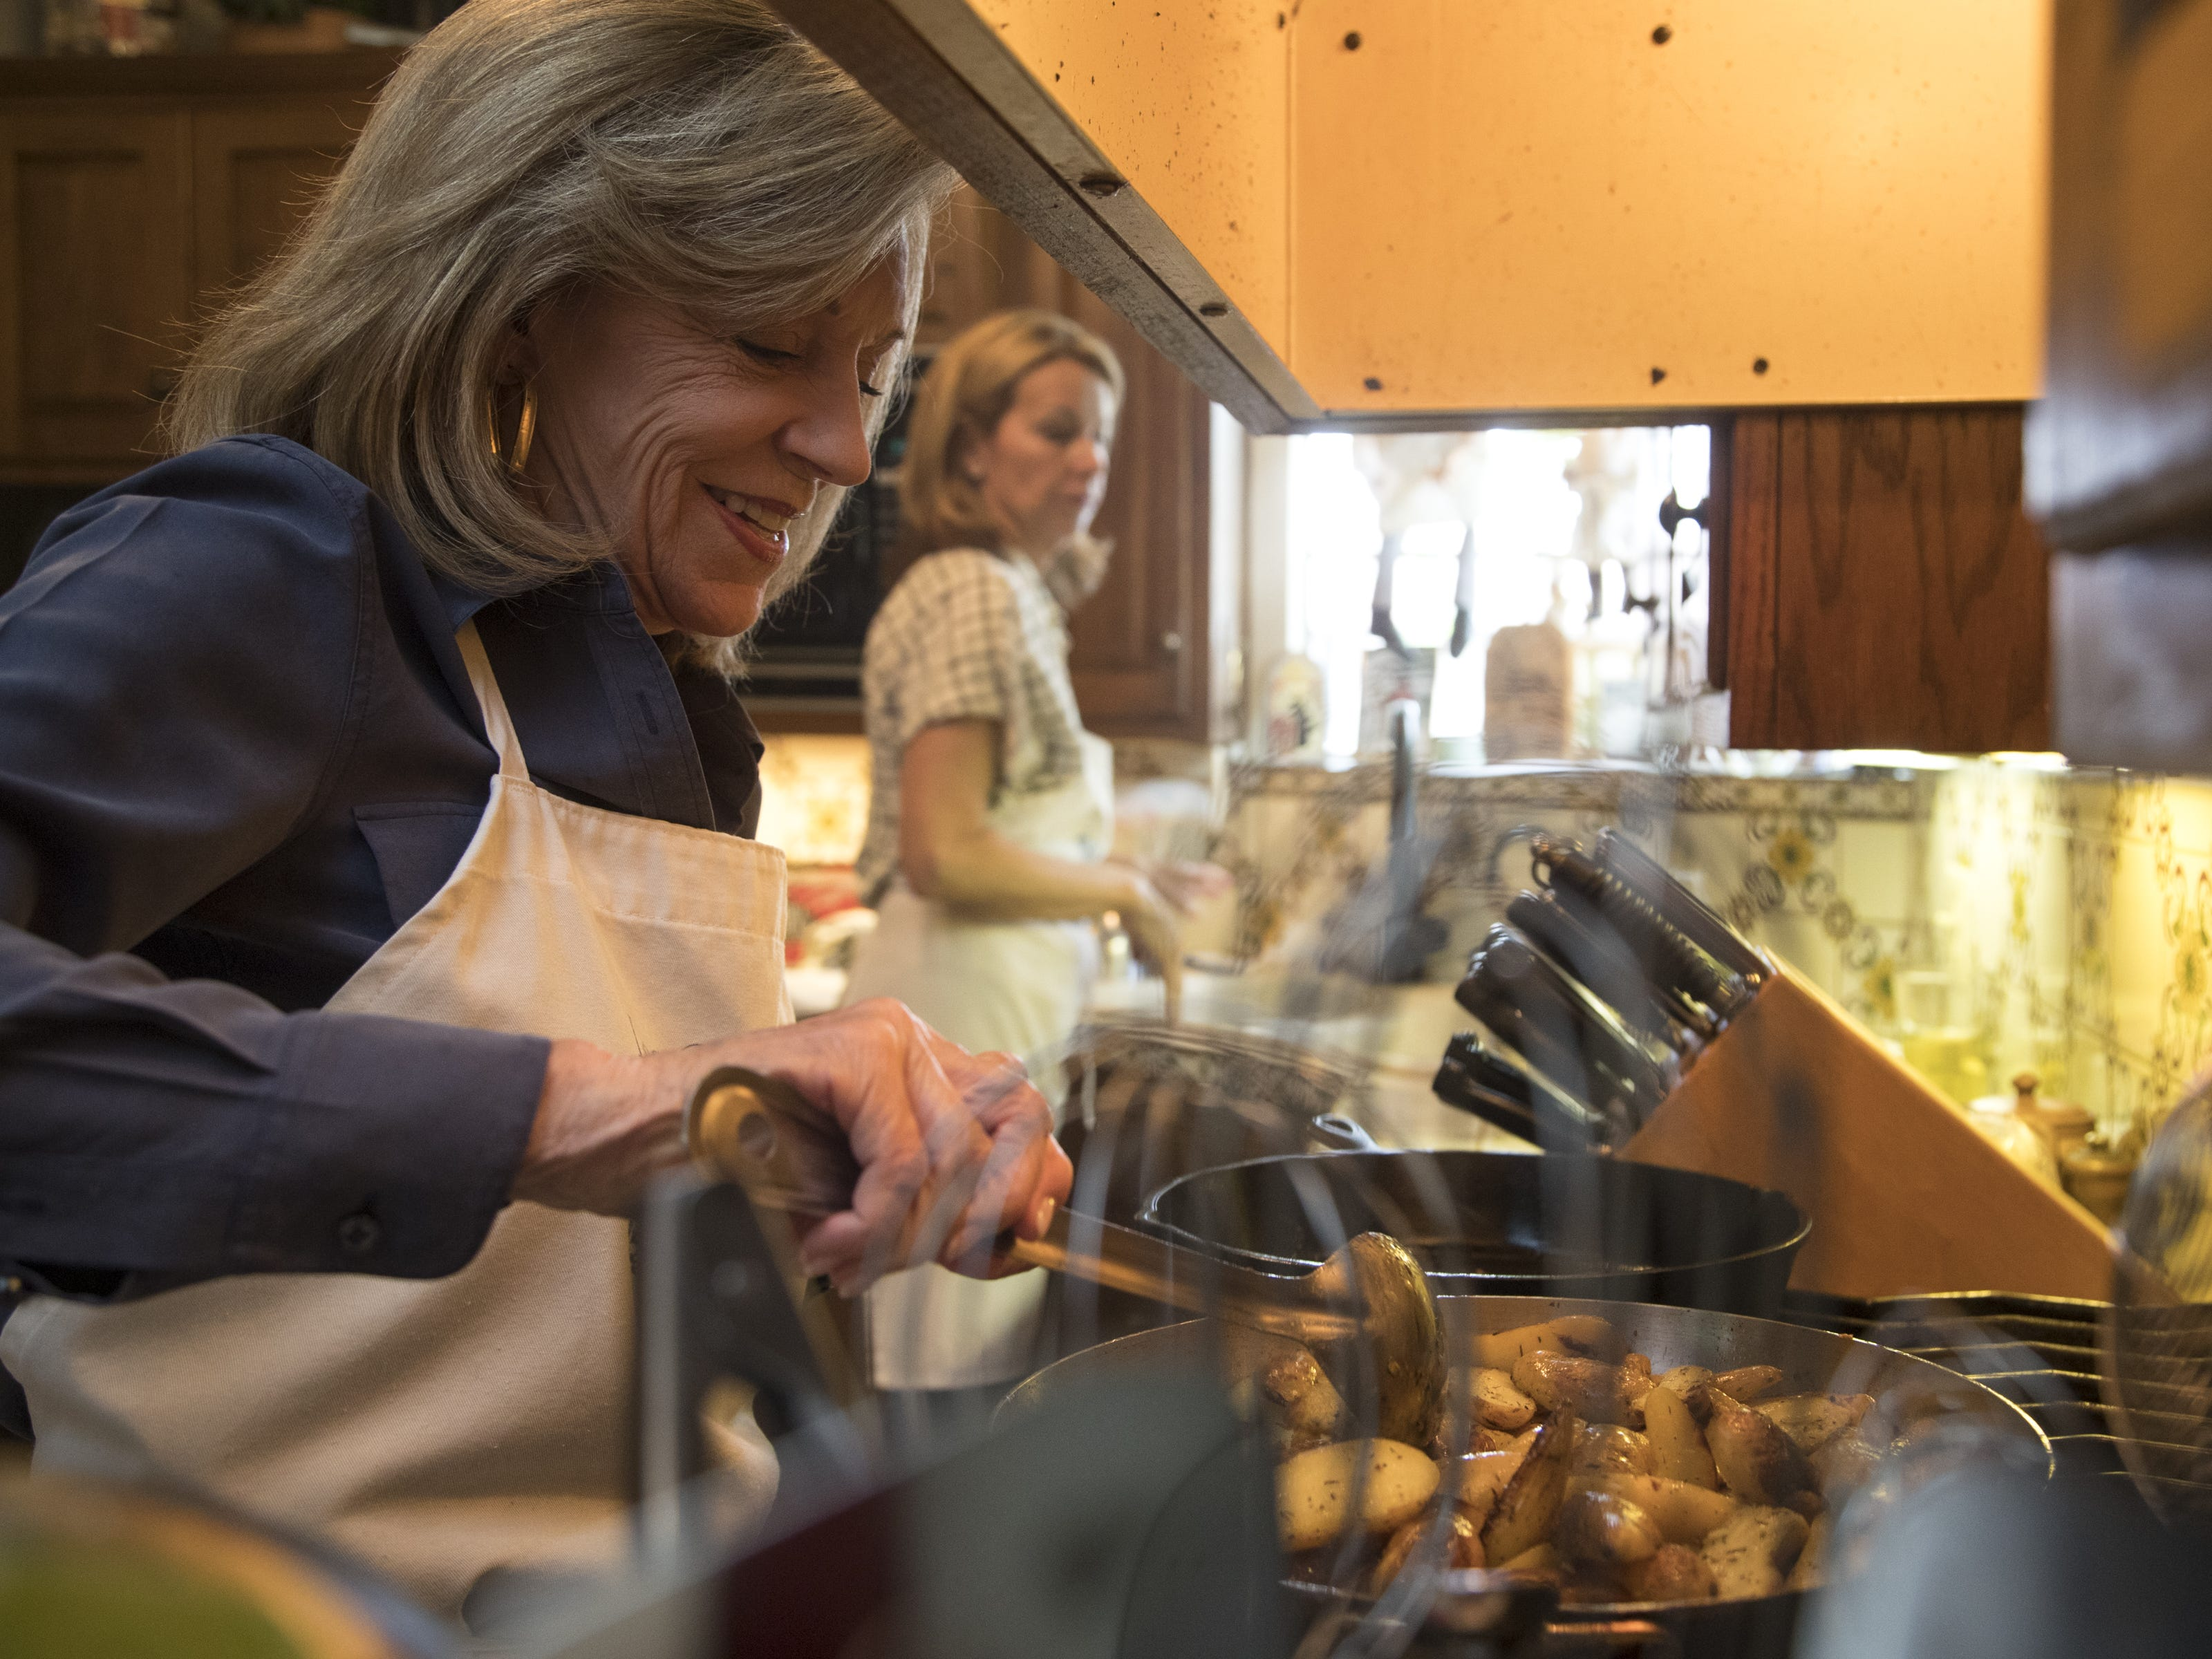 Barbara Fenzl works in the kitchen during a cooking class, May 7, 2019, at Les Gourmettes Cooking School, 6610 N. Central Ave., Phoenix.